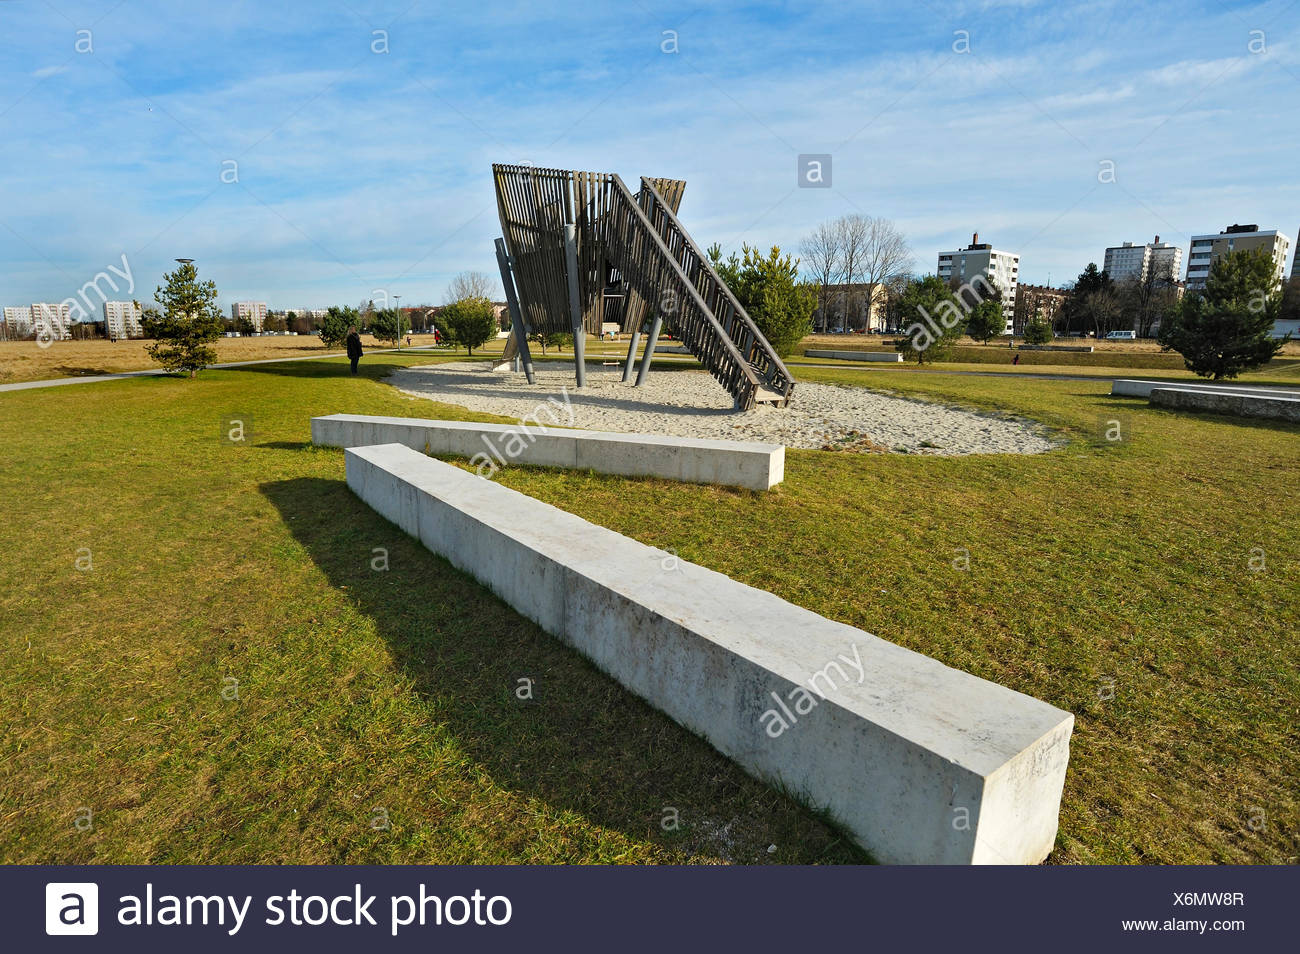 Concrete benches and a slide on a playground - Stock Image